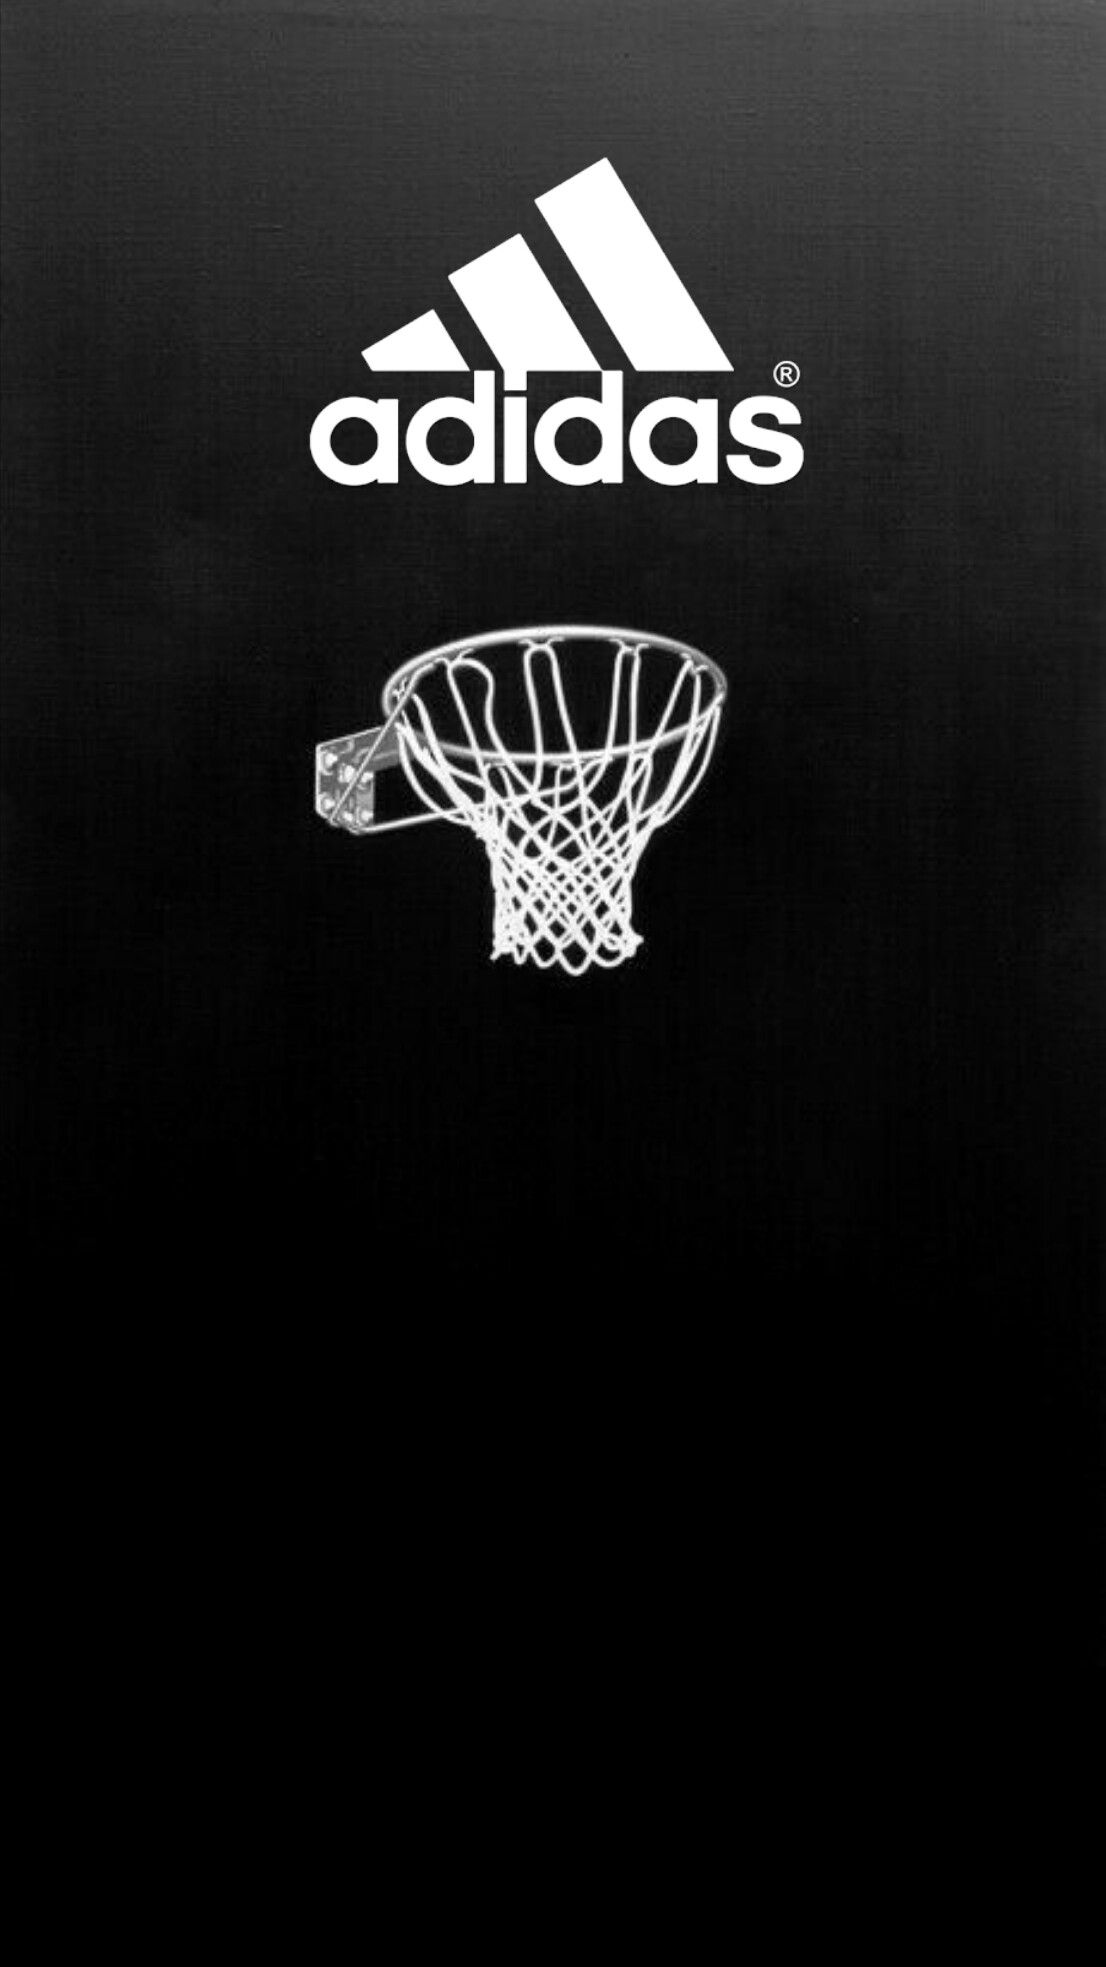 Adidas Basketball Wallpaper Android Iphone Ios In 2019